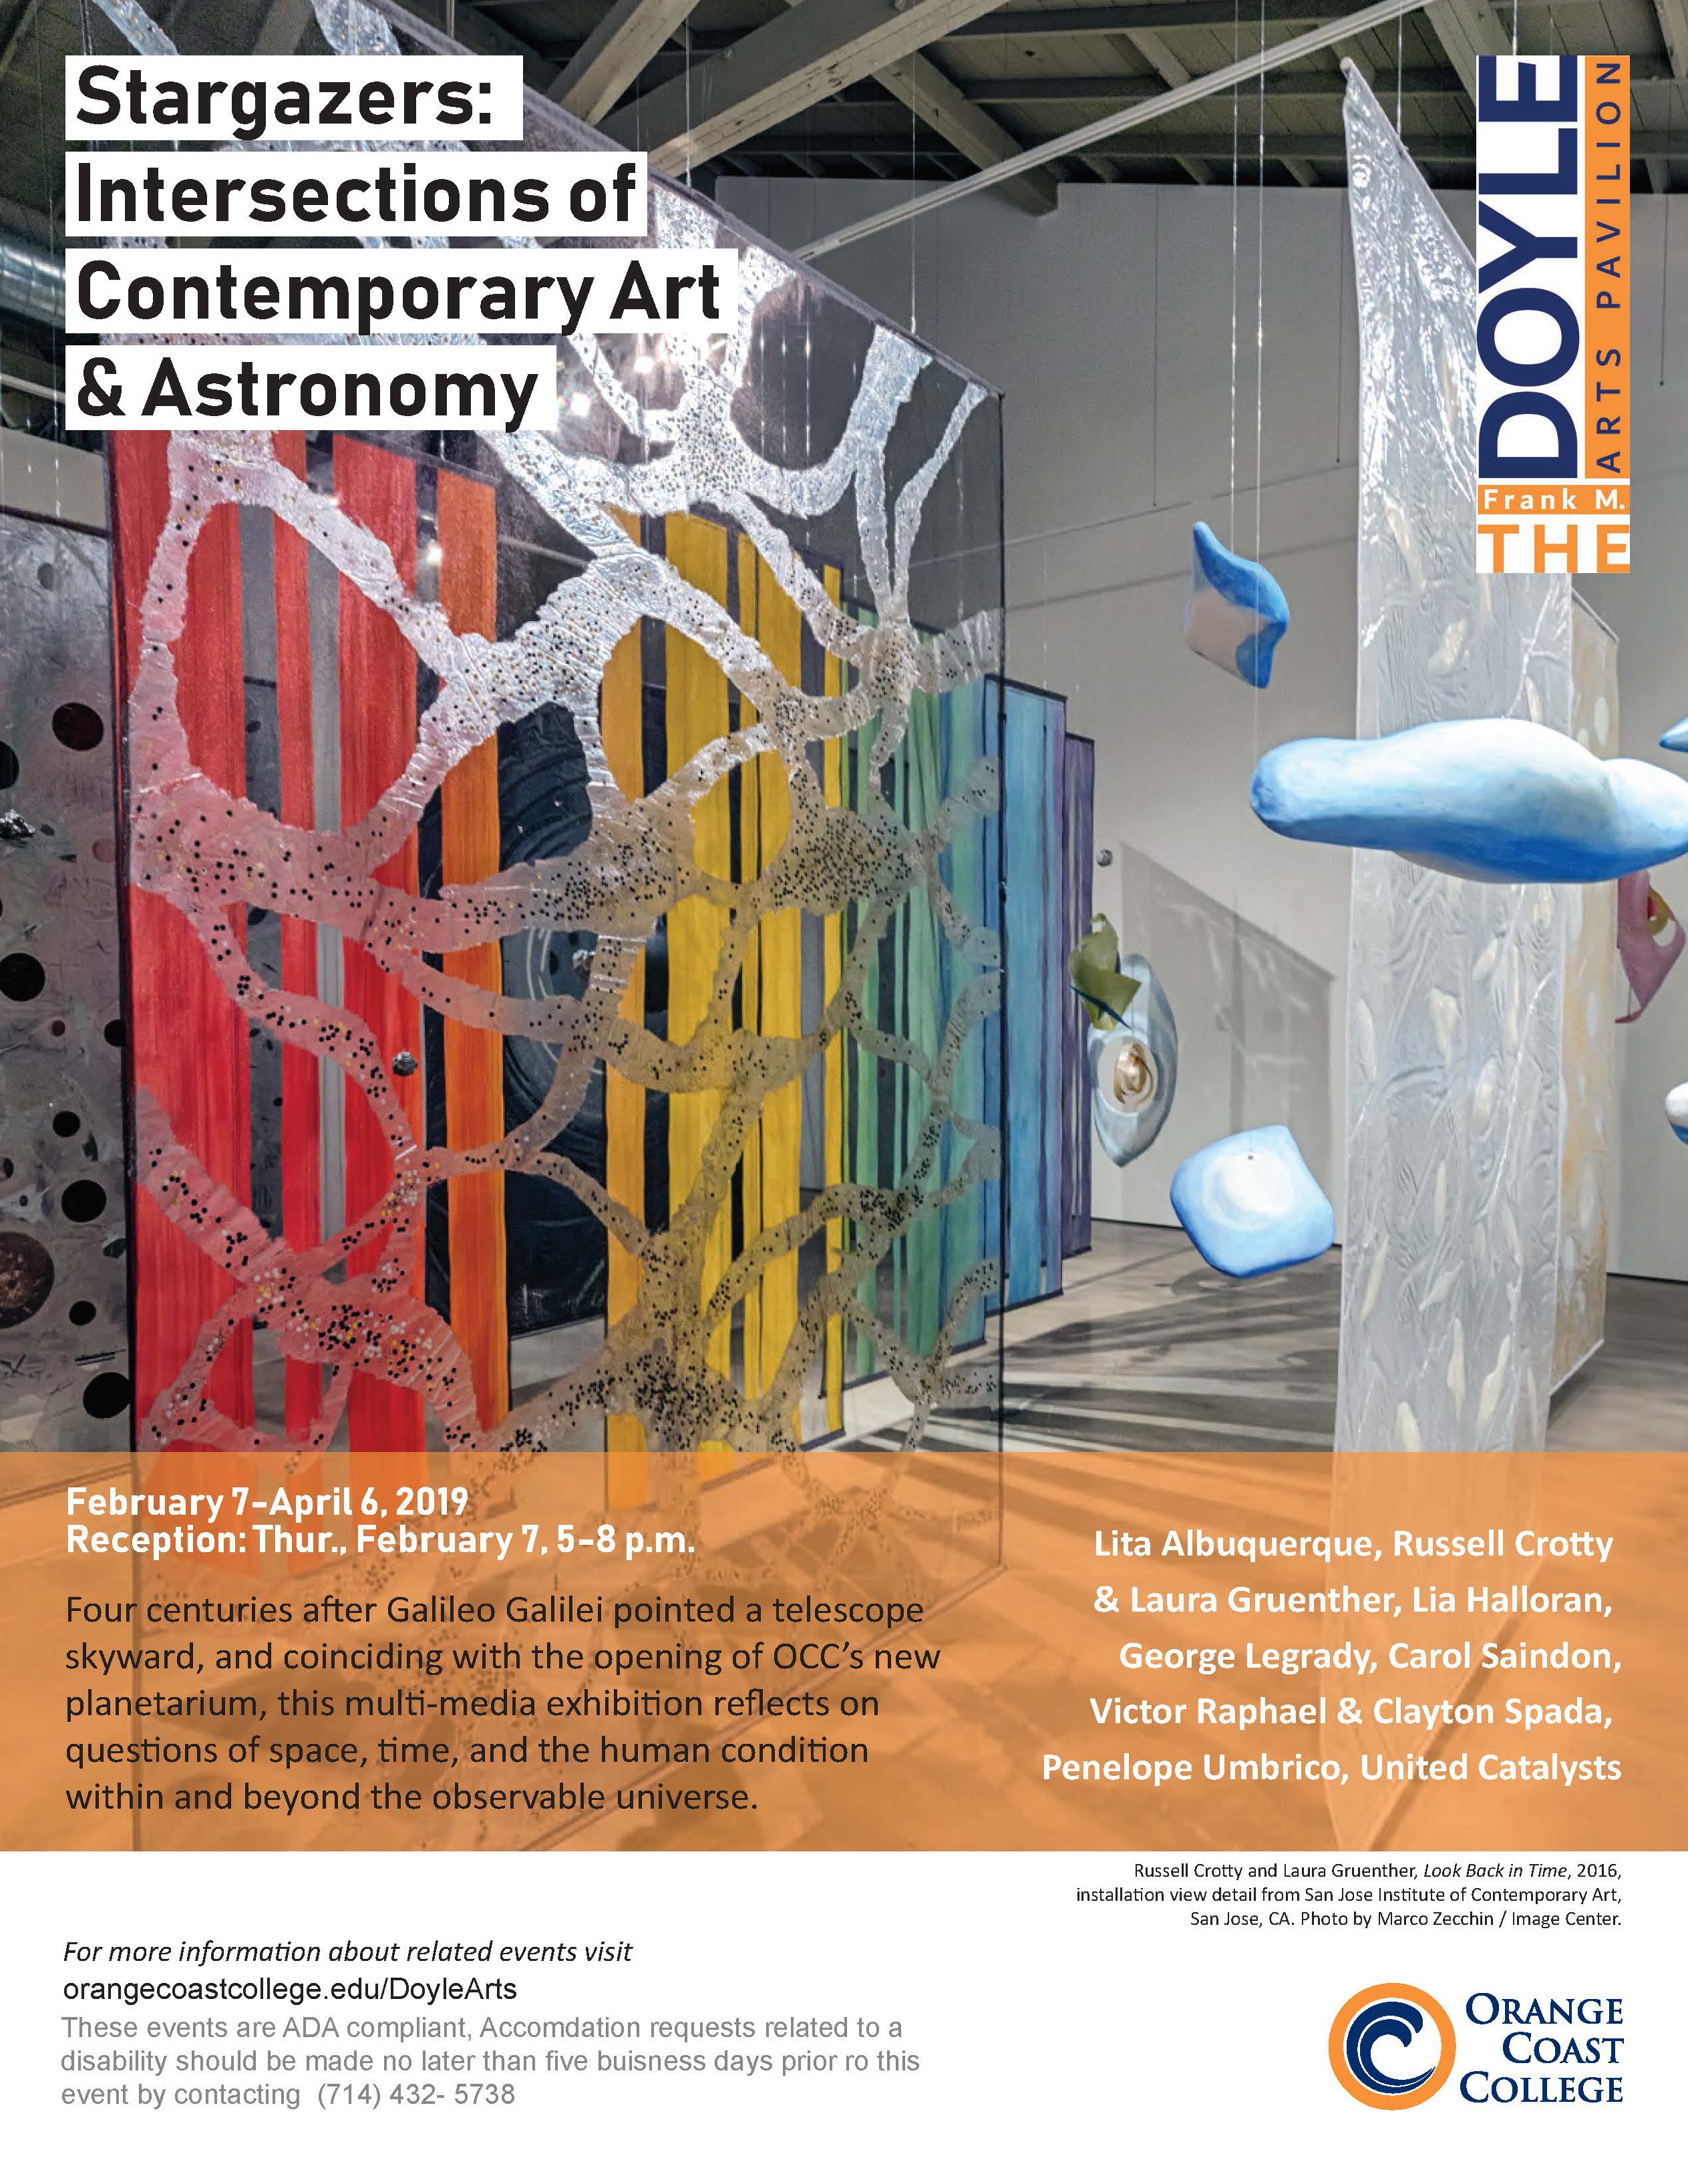 Stargazers: Intersections of Contemporary Art & Astronomy